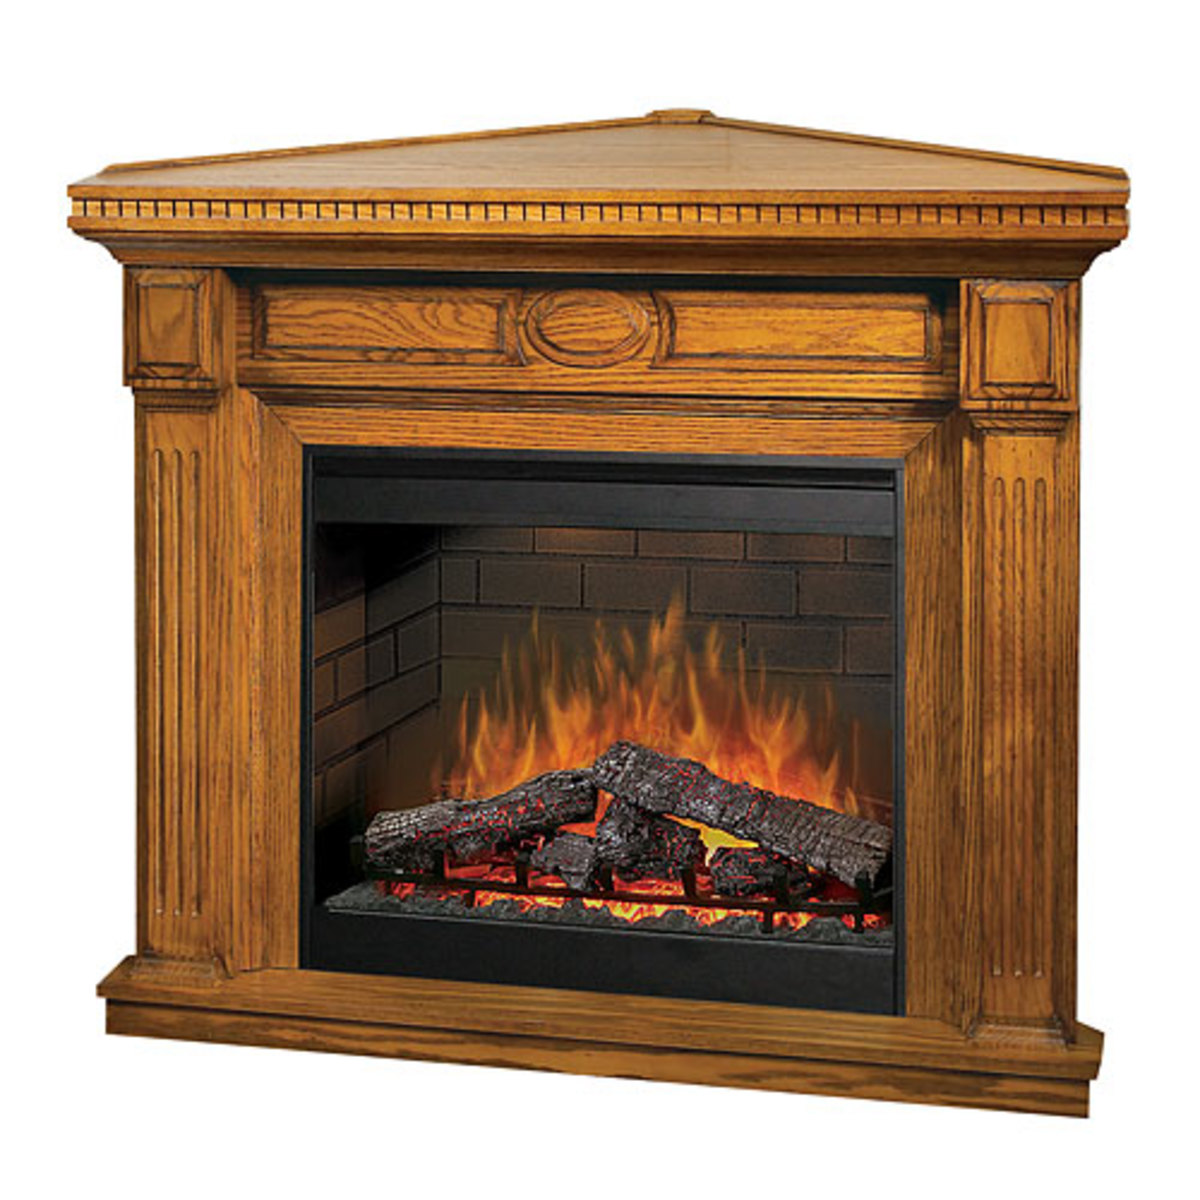 DIY CORNER FIREPLACE MANTLE | EHOW - EHOW | HOW TO VIDEOS